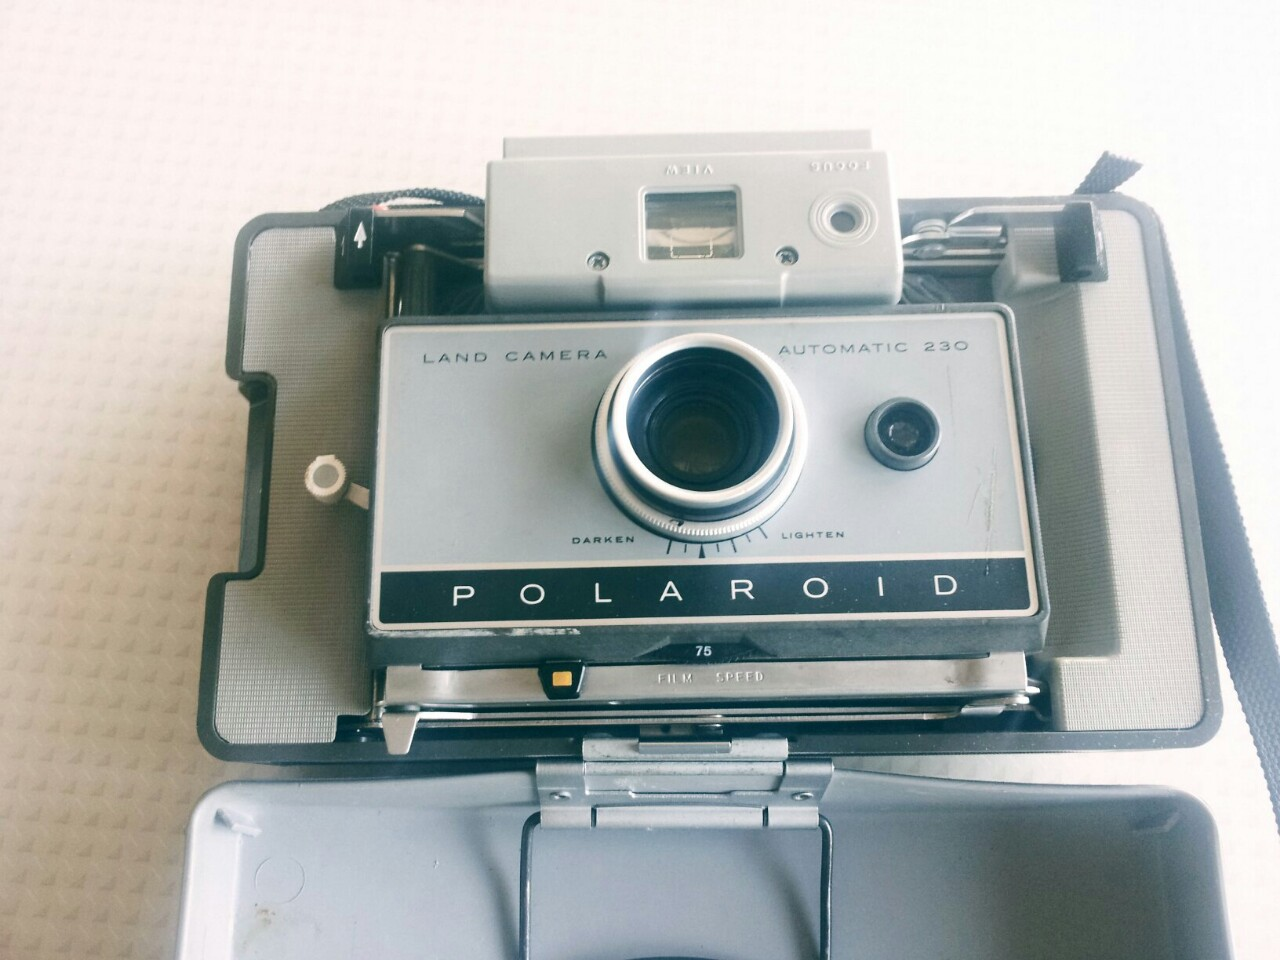 Camera Vintage Tumblr : Vintage polaroid land camera automatic 230 on storenvy